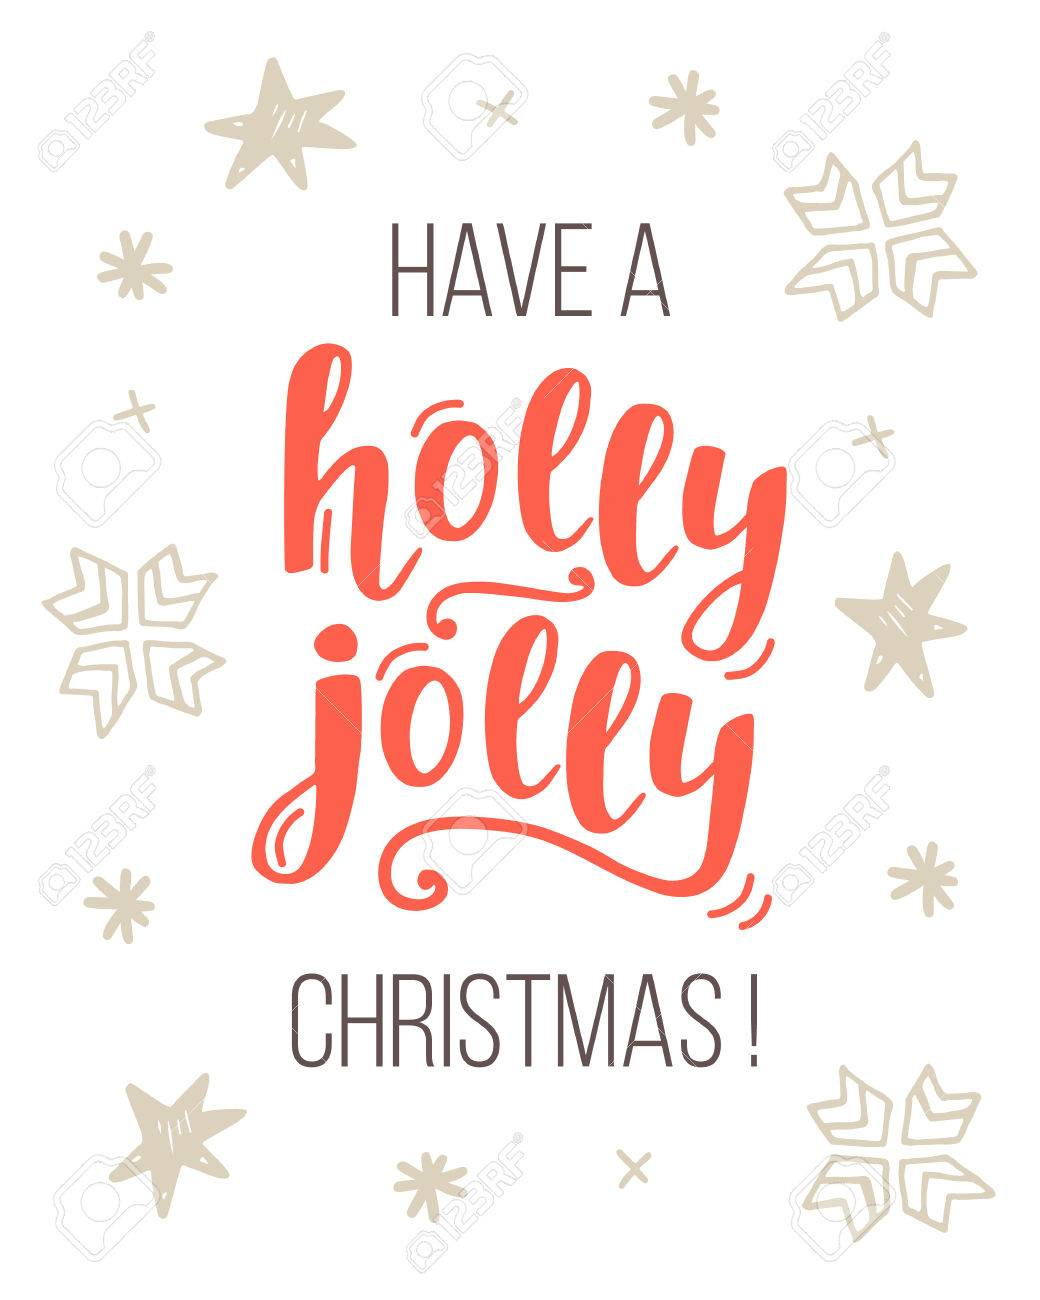 Have A Holly Jolly Christmas Greeting Card With Handwritten Lettering